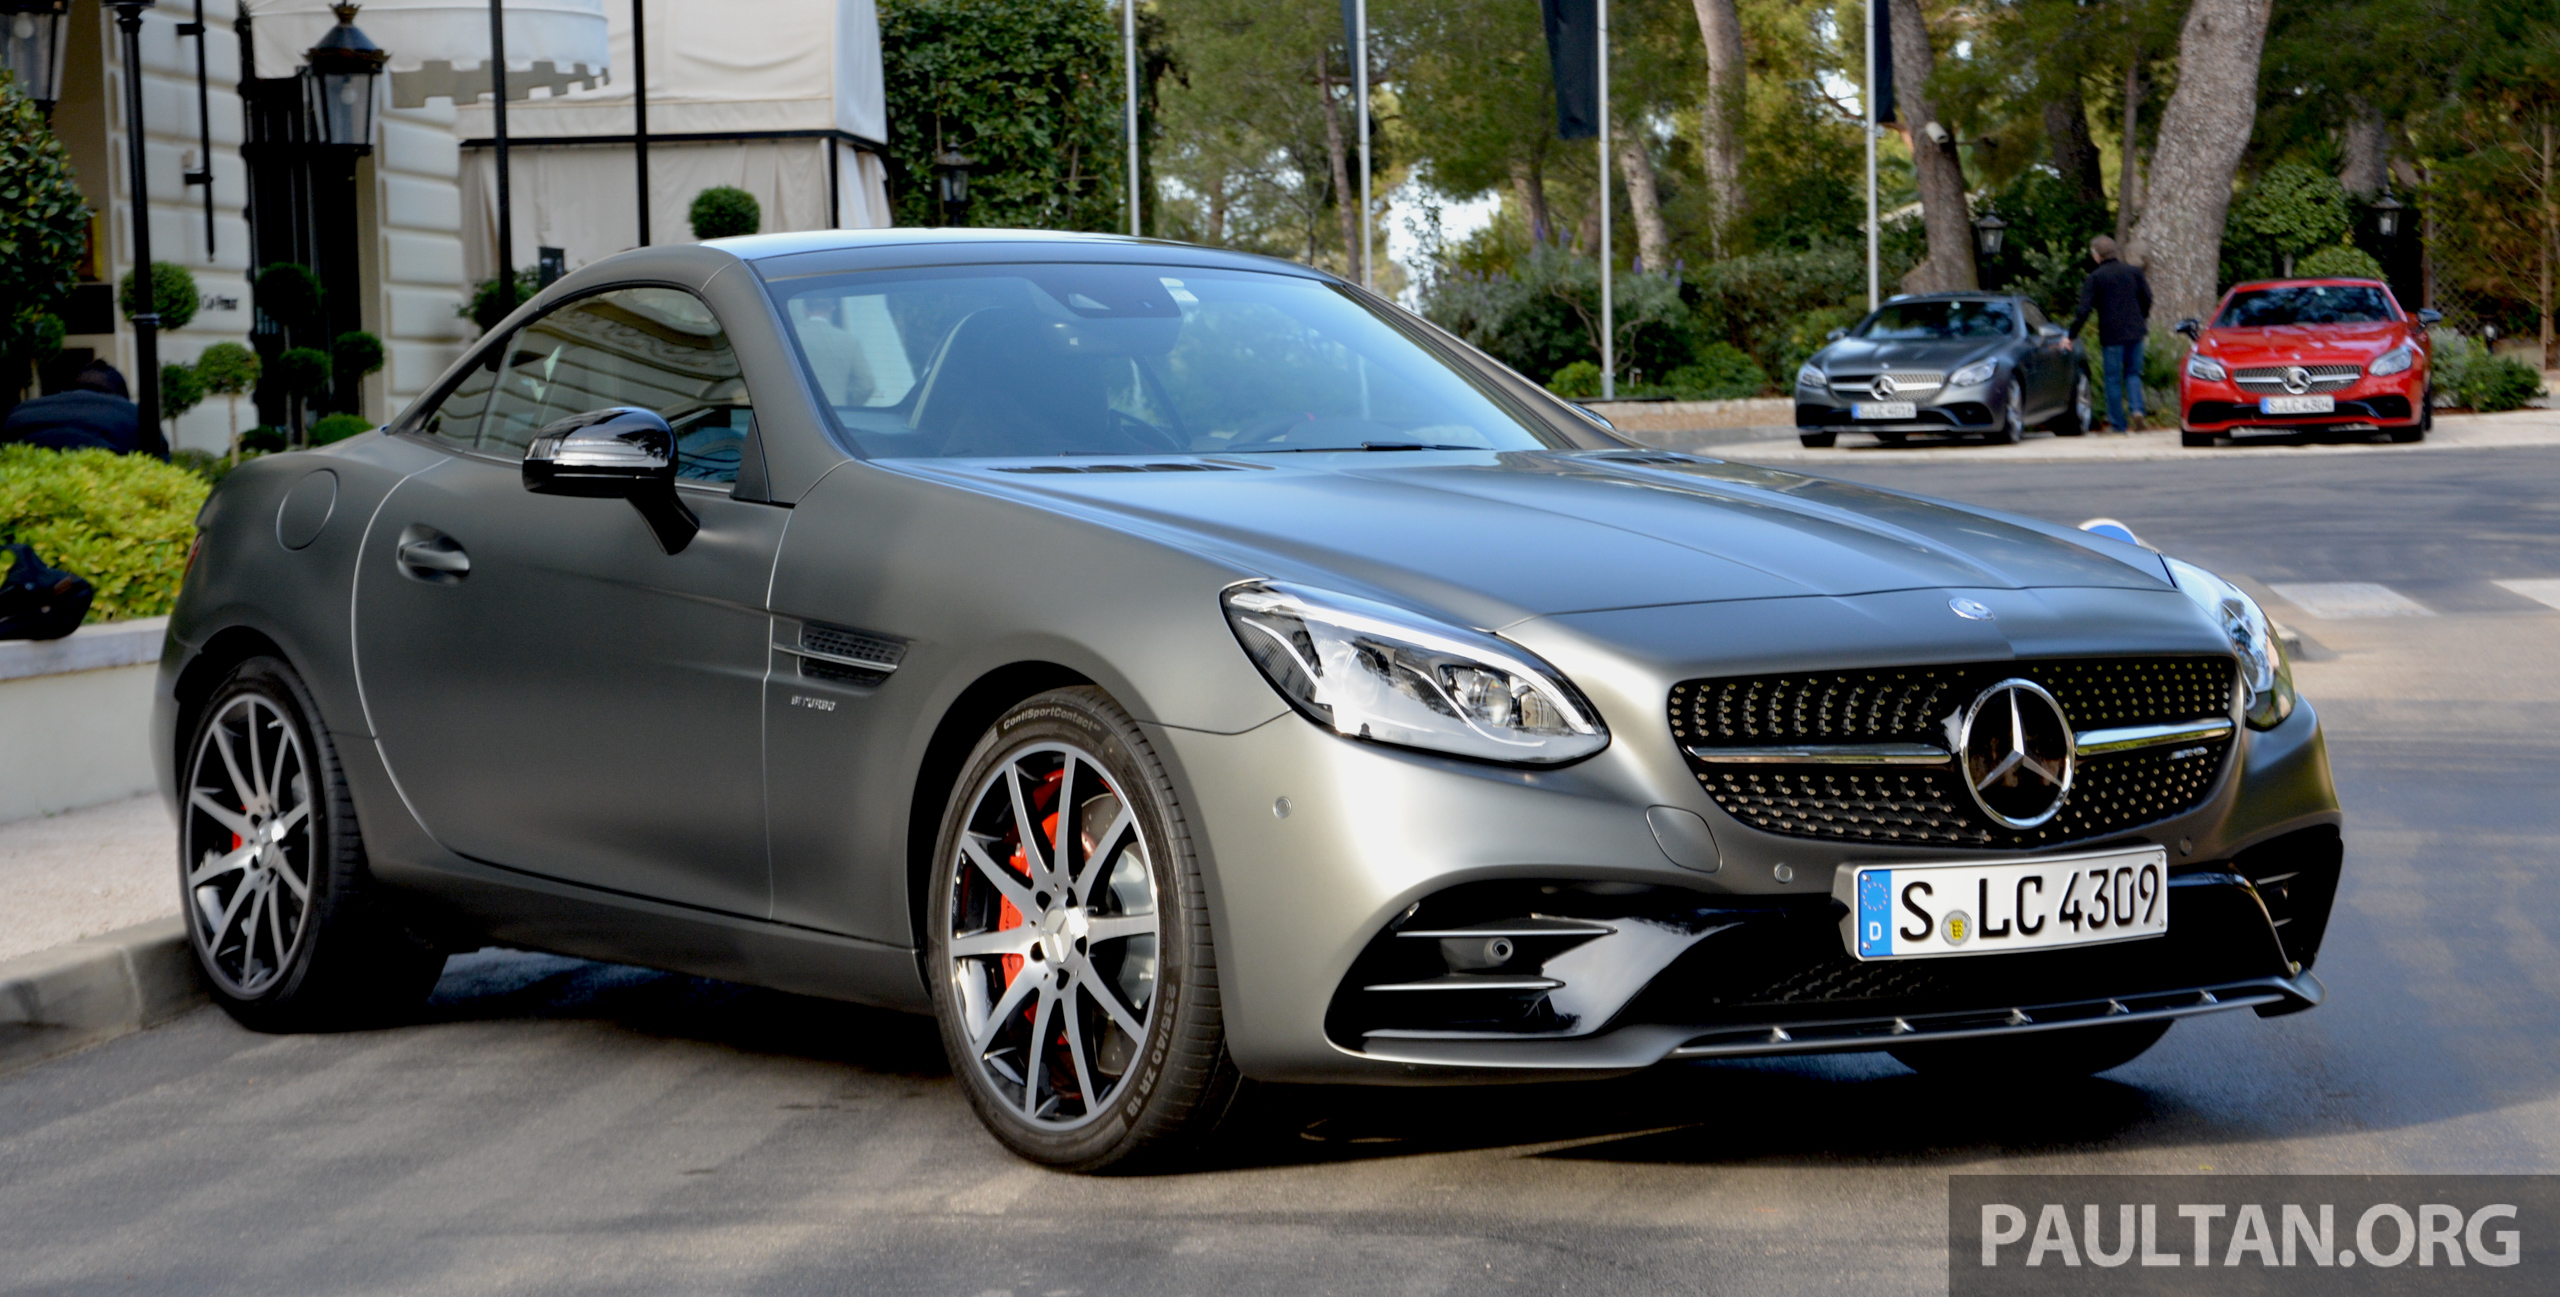 Driven mercedes amg slc43 in the french riviera image 474507 for Nice mercedes benz